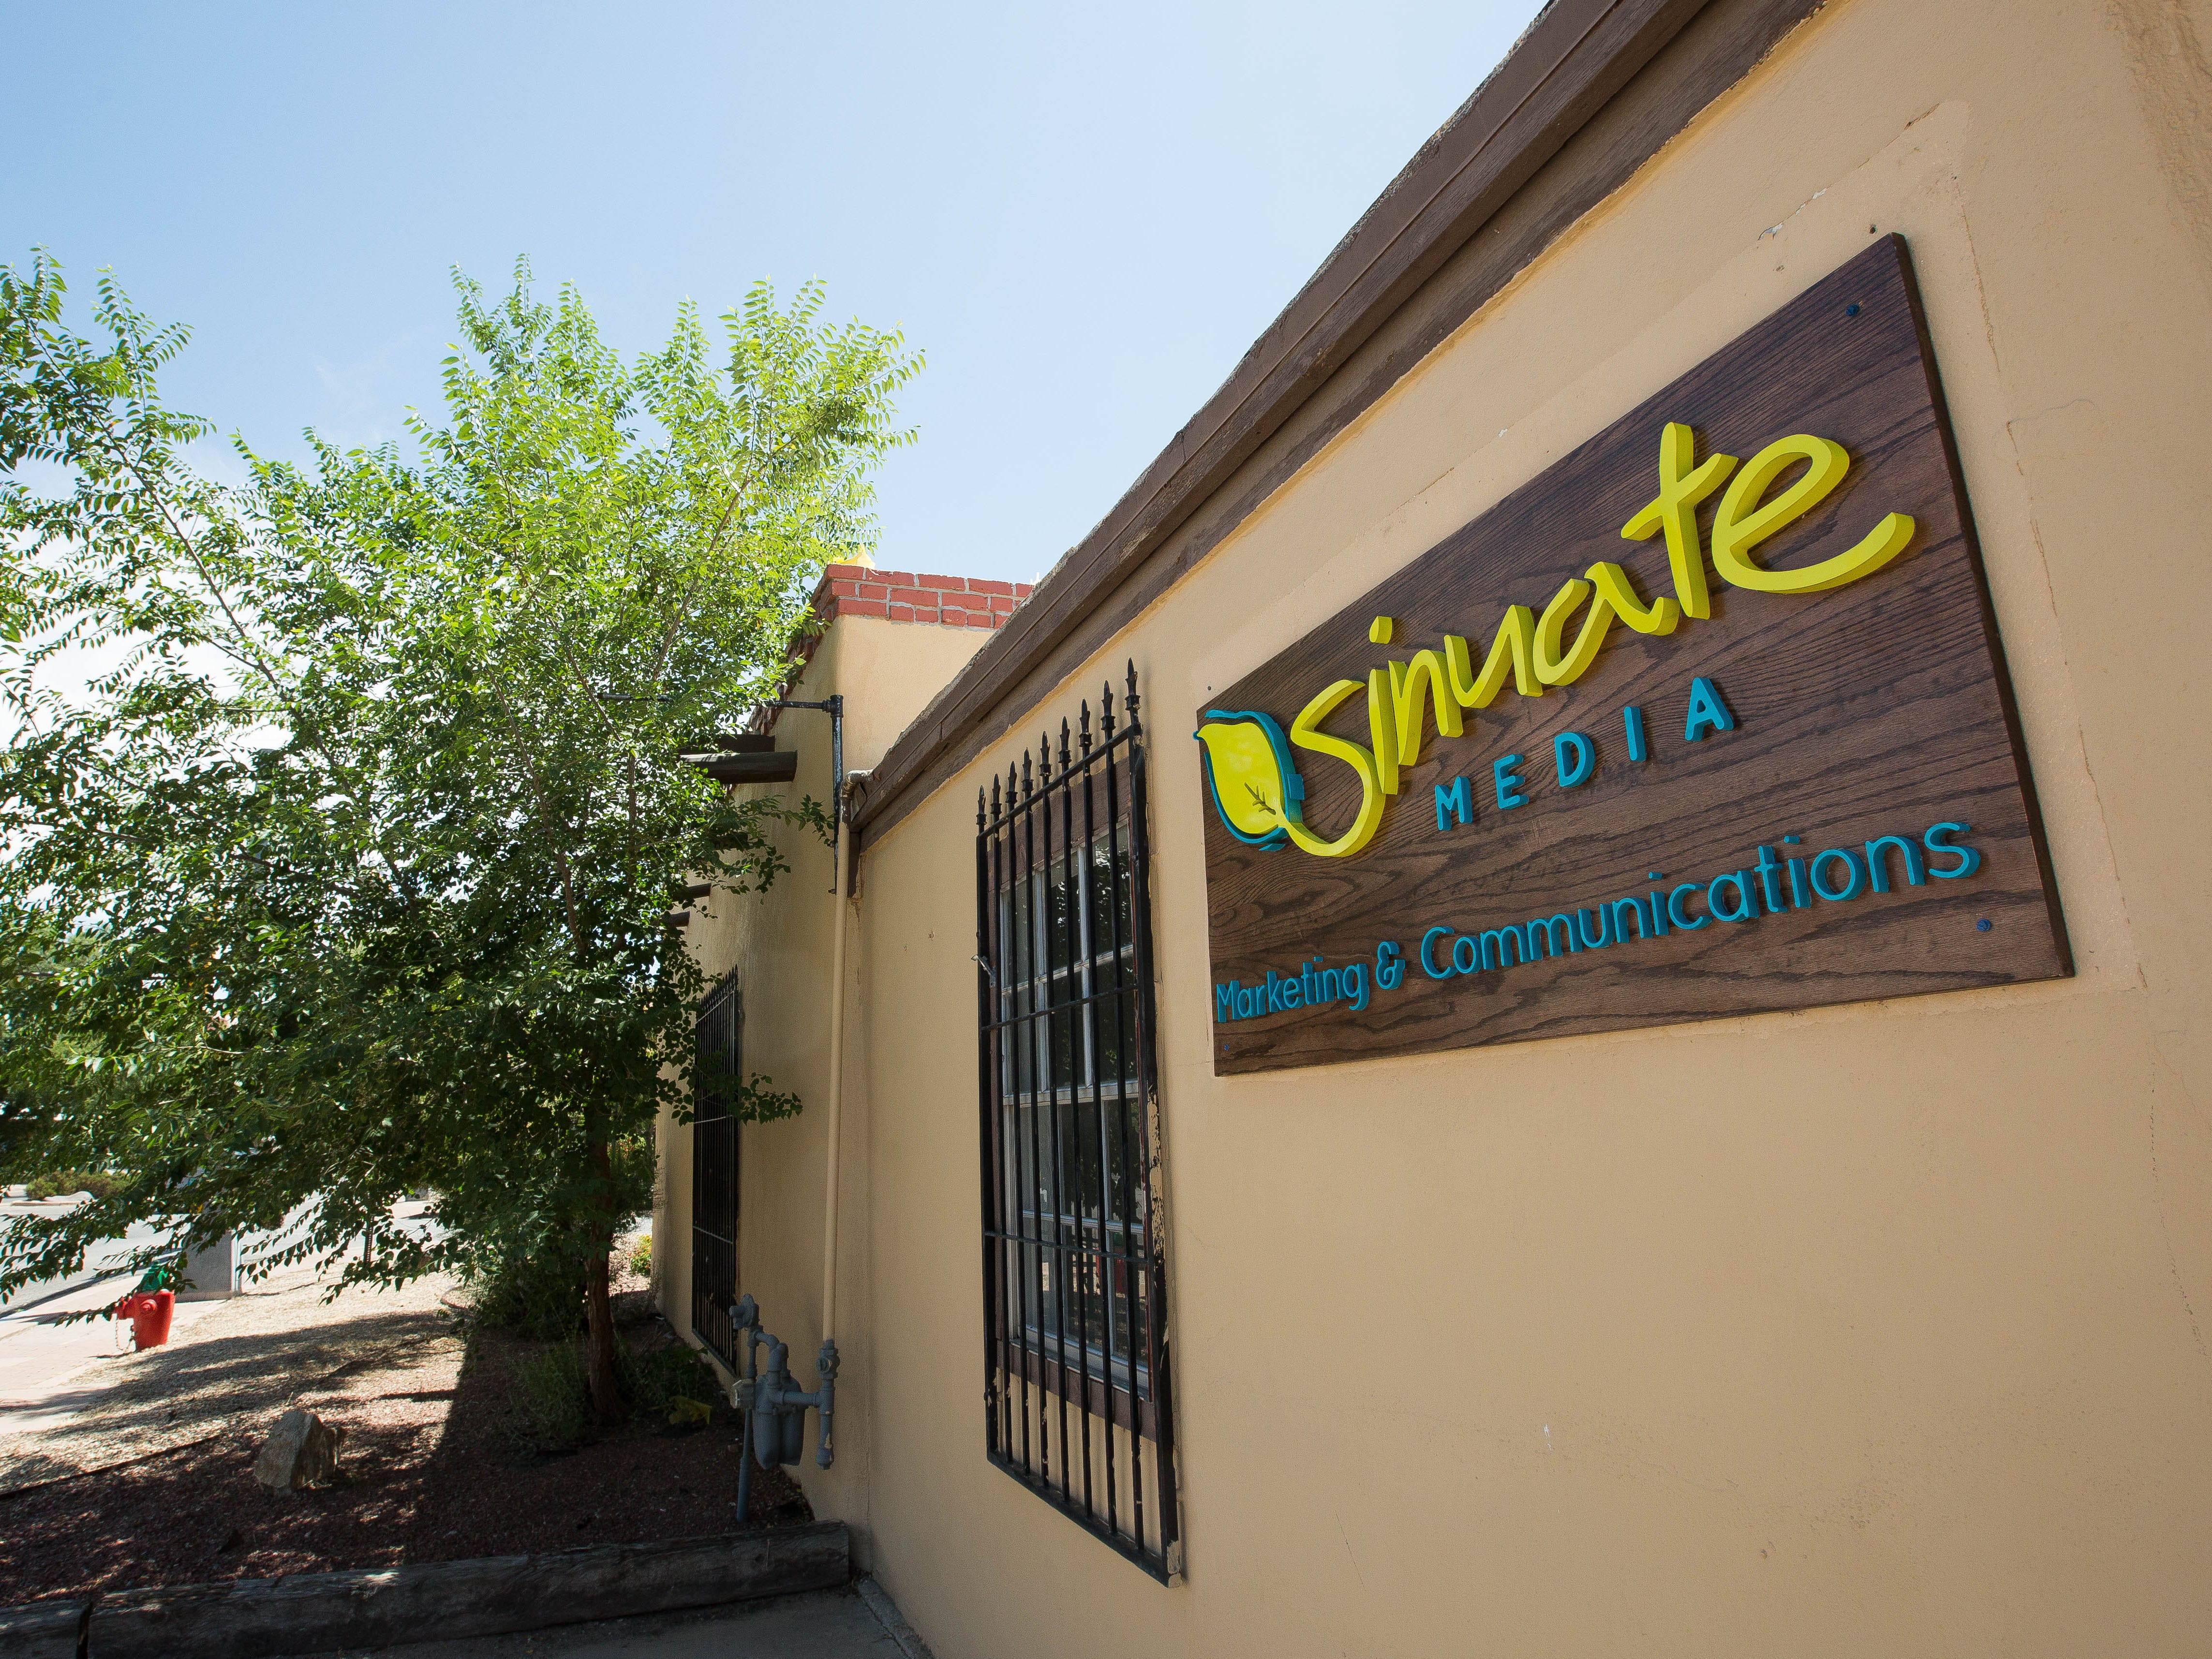 Marketing and communications firm Sinuate Media just held a ribbon-cutting for its new offices in Mesilla, as seen on Friday, Aug. 31, 2018.